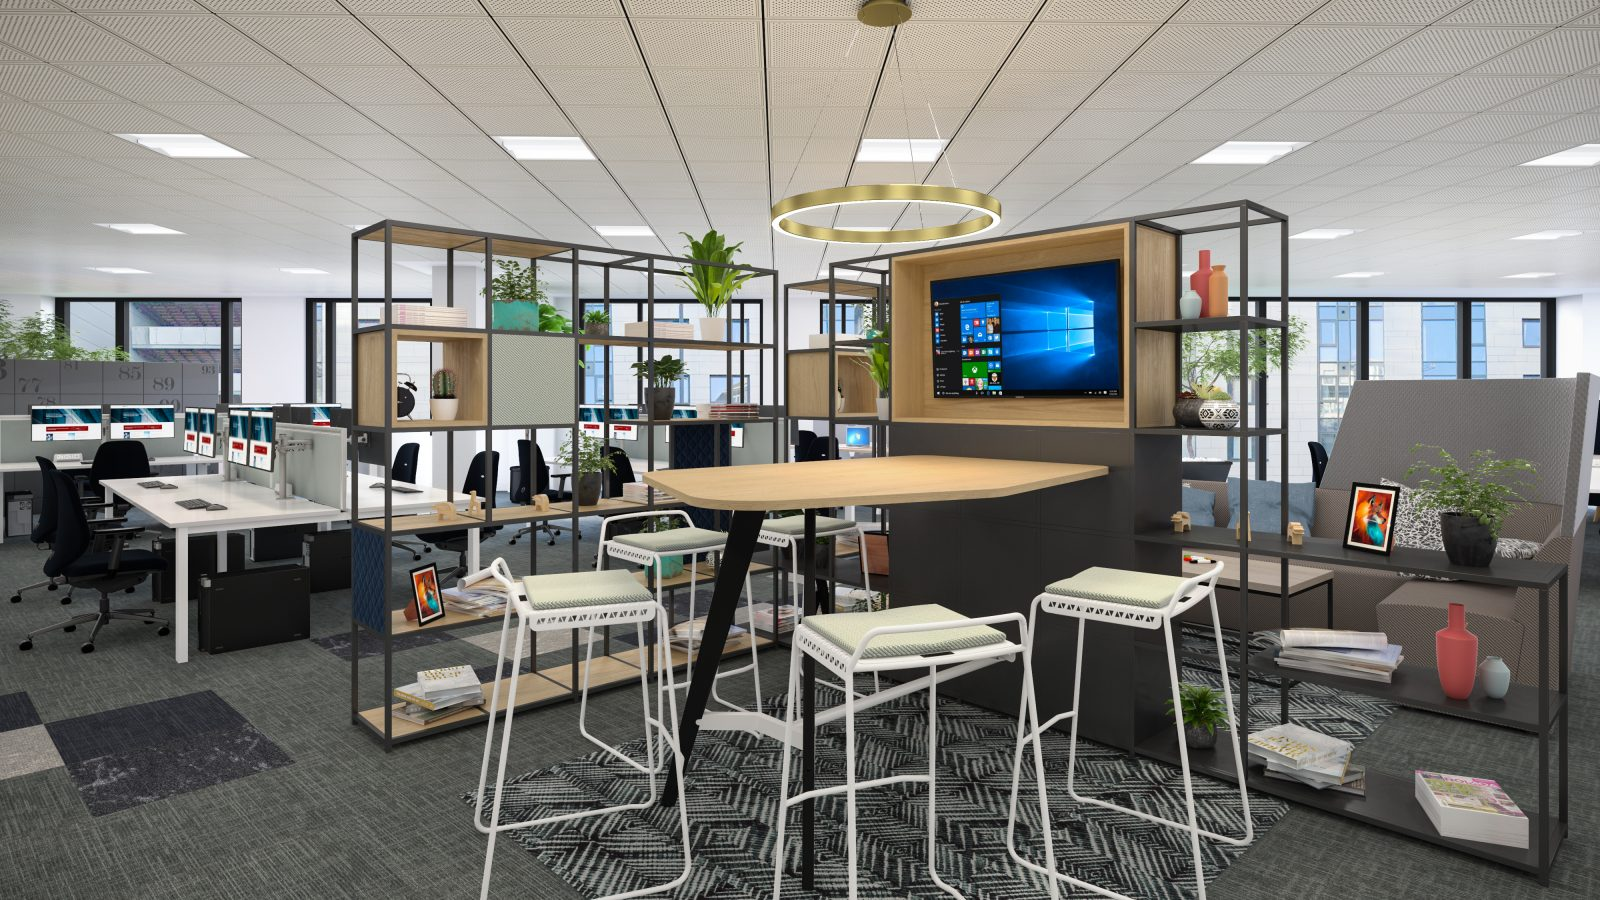 OFFICE SPACE REDUCTION OR WORKPLACE REIMAGINATION – WHERE DO YOU STAND?